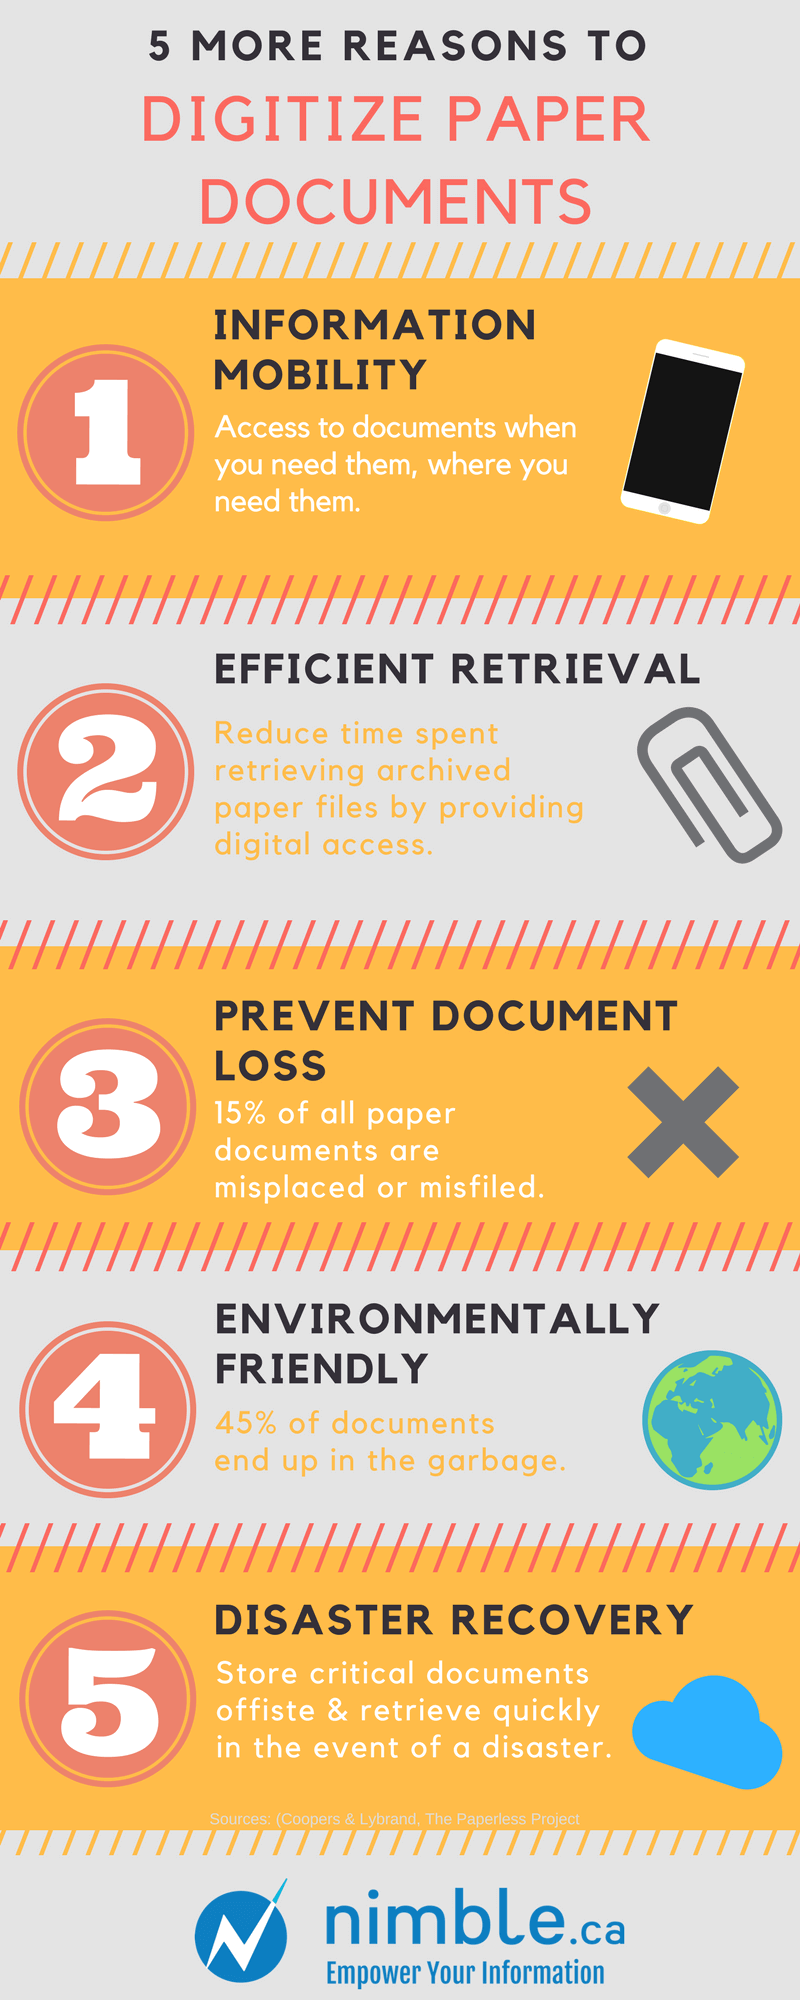 An infographic on 5 more reasons to digitize paper documents.